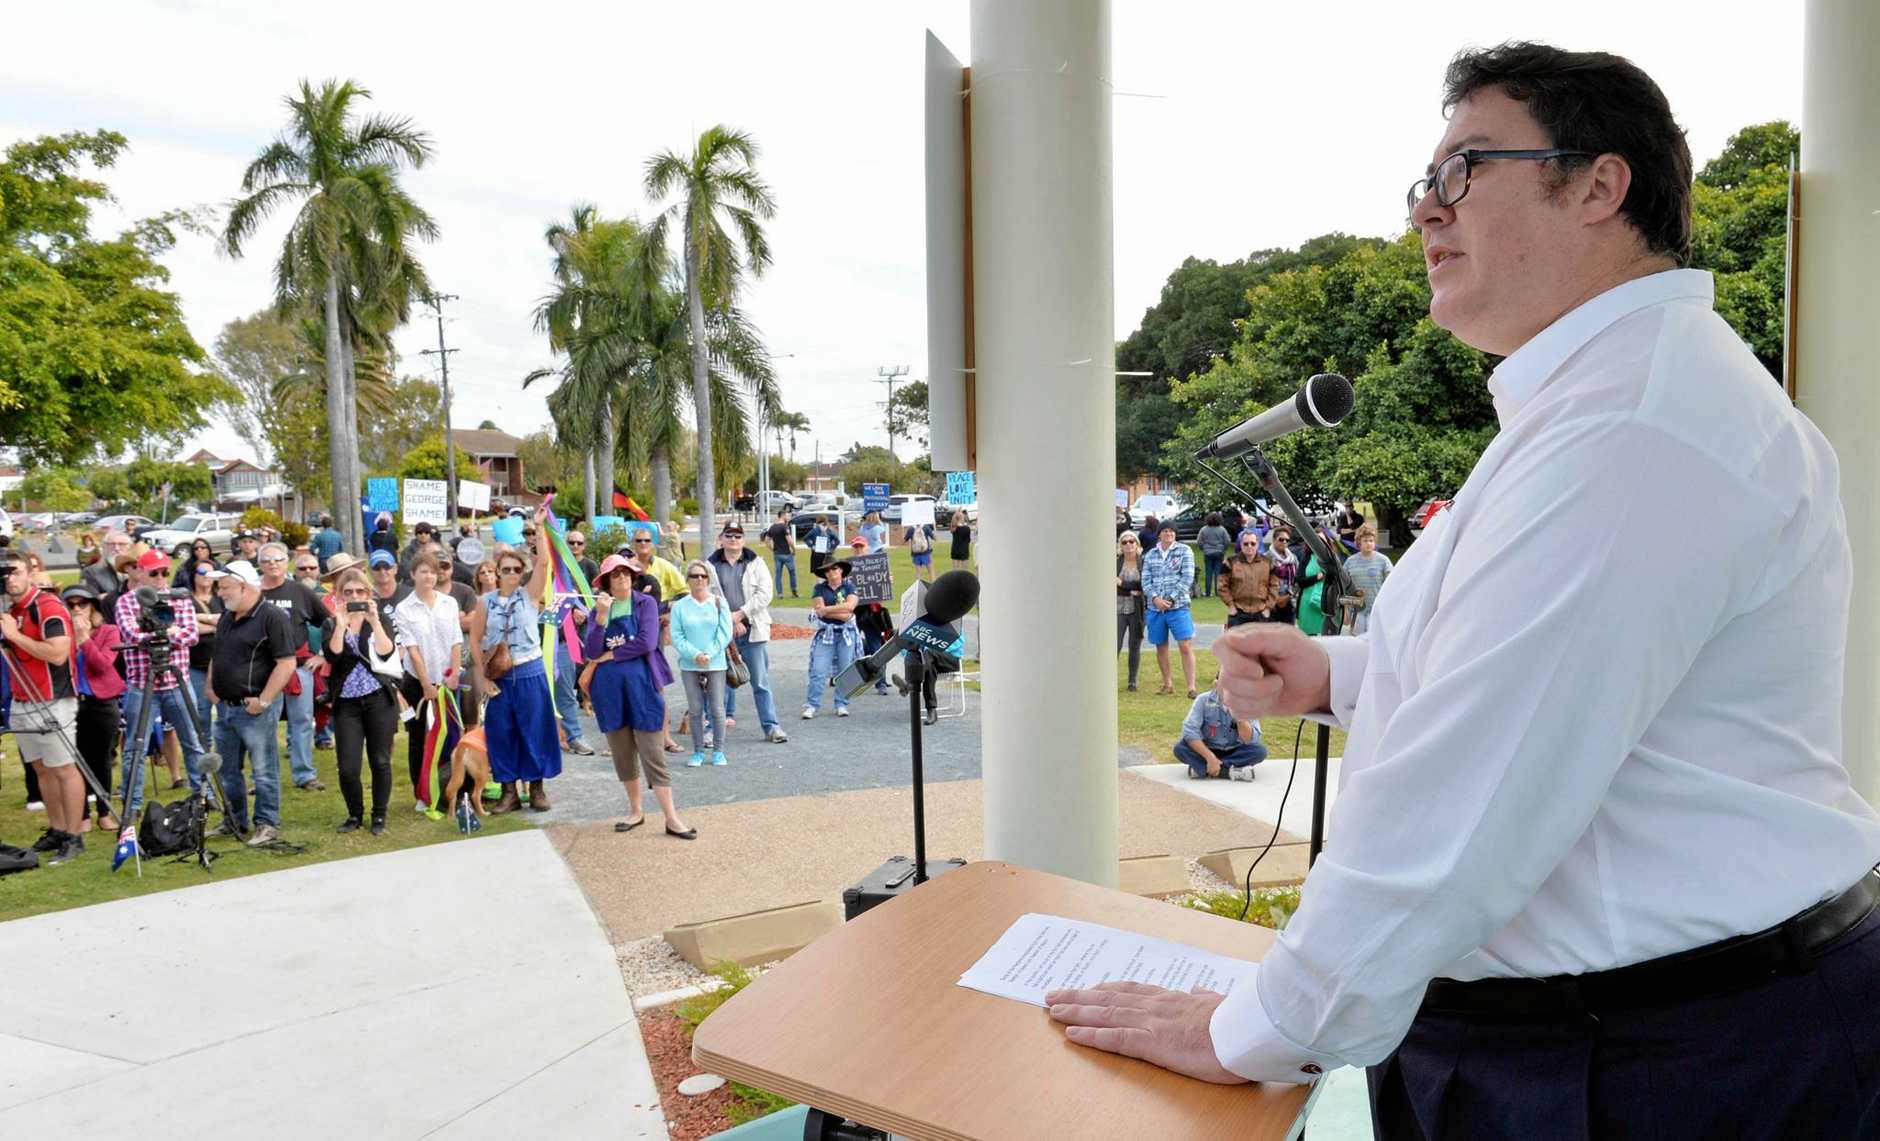 George Christensen speaks at during a Reclaim Australia Rally in Mackay in 2015.